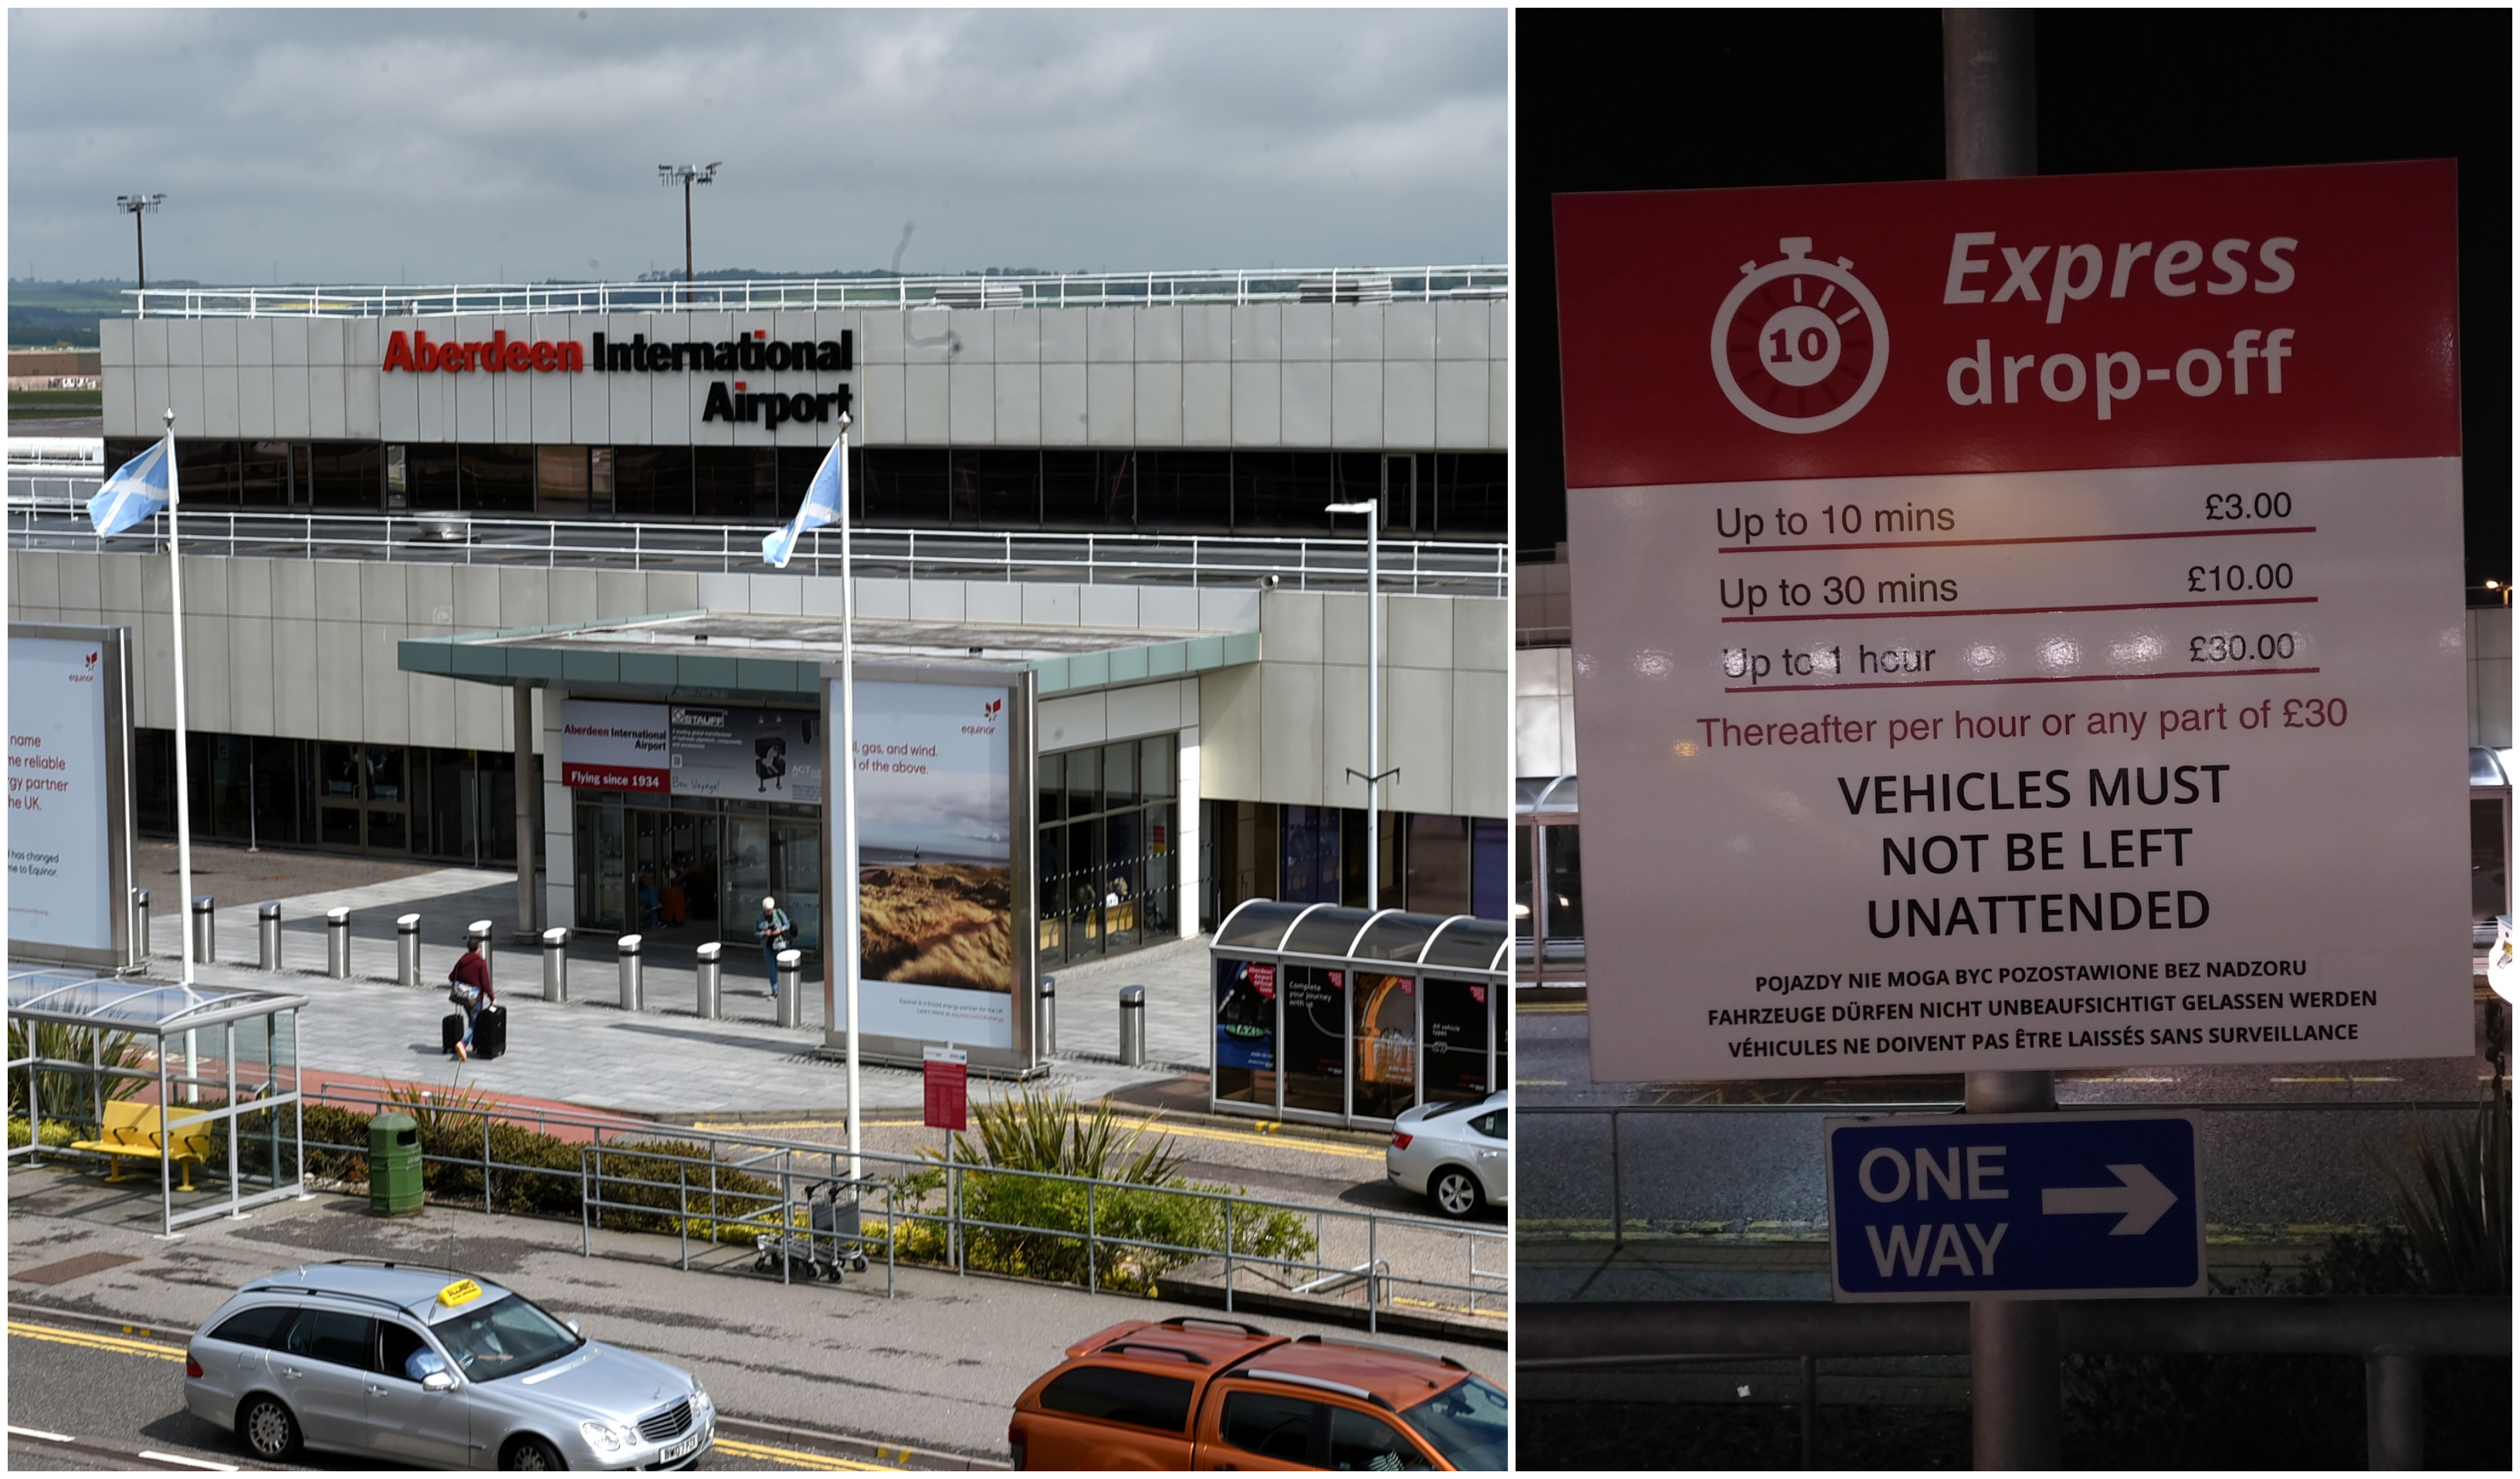 The express drop-off charge at Aberdeen Airport has increased from £2 to £3.